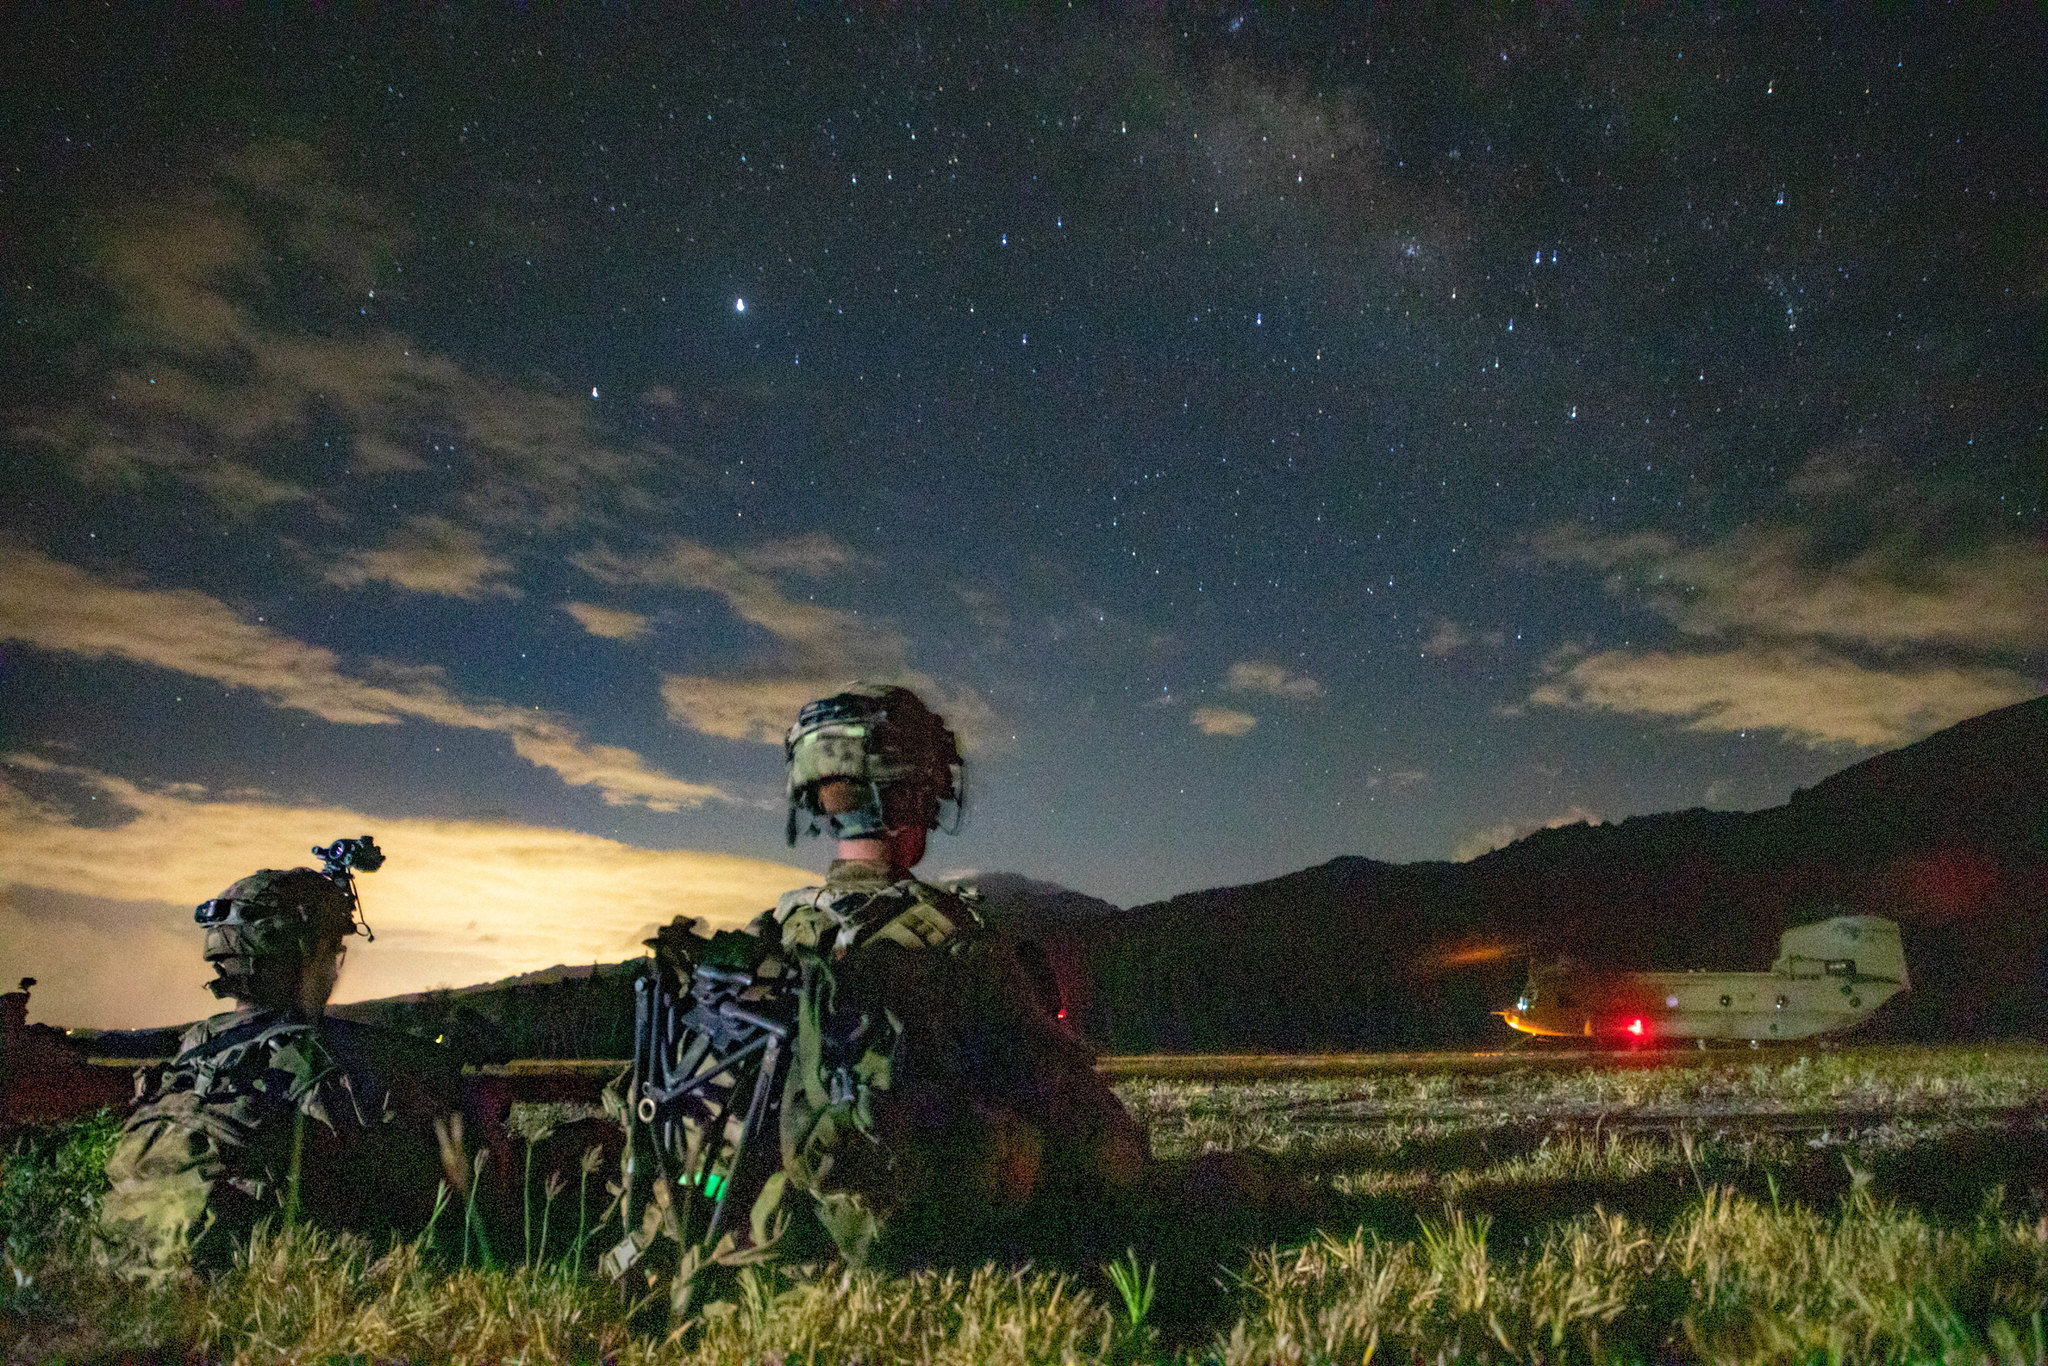 Soldiers conduct air assault operations training in total darkness to accomplish their mission during exercise Lightning Forge 2020 at Oahu, Hawaii July 17, 2020. (Sgt. Sarah D. Sangster/Army)